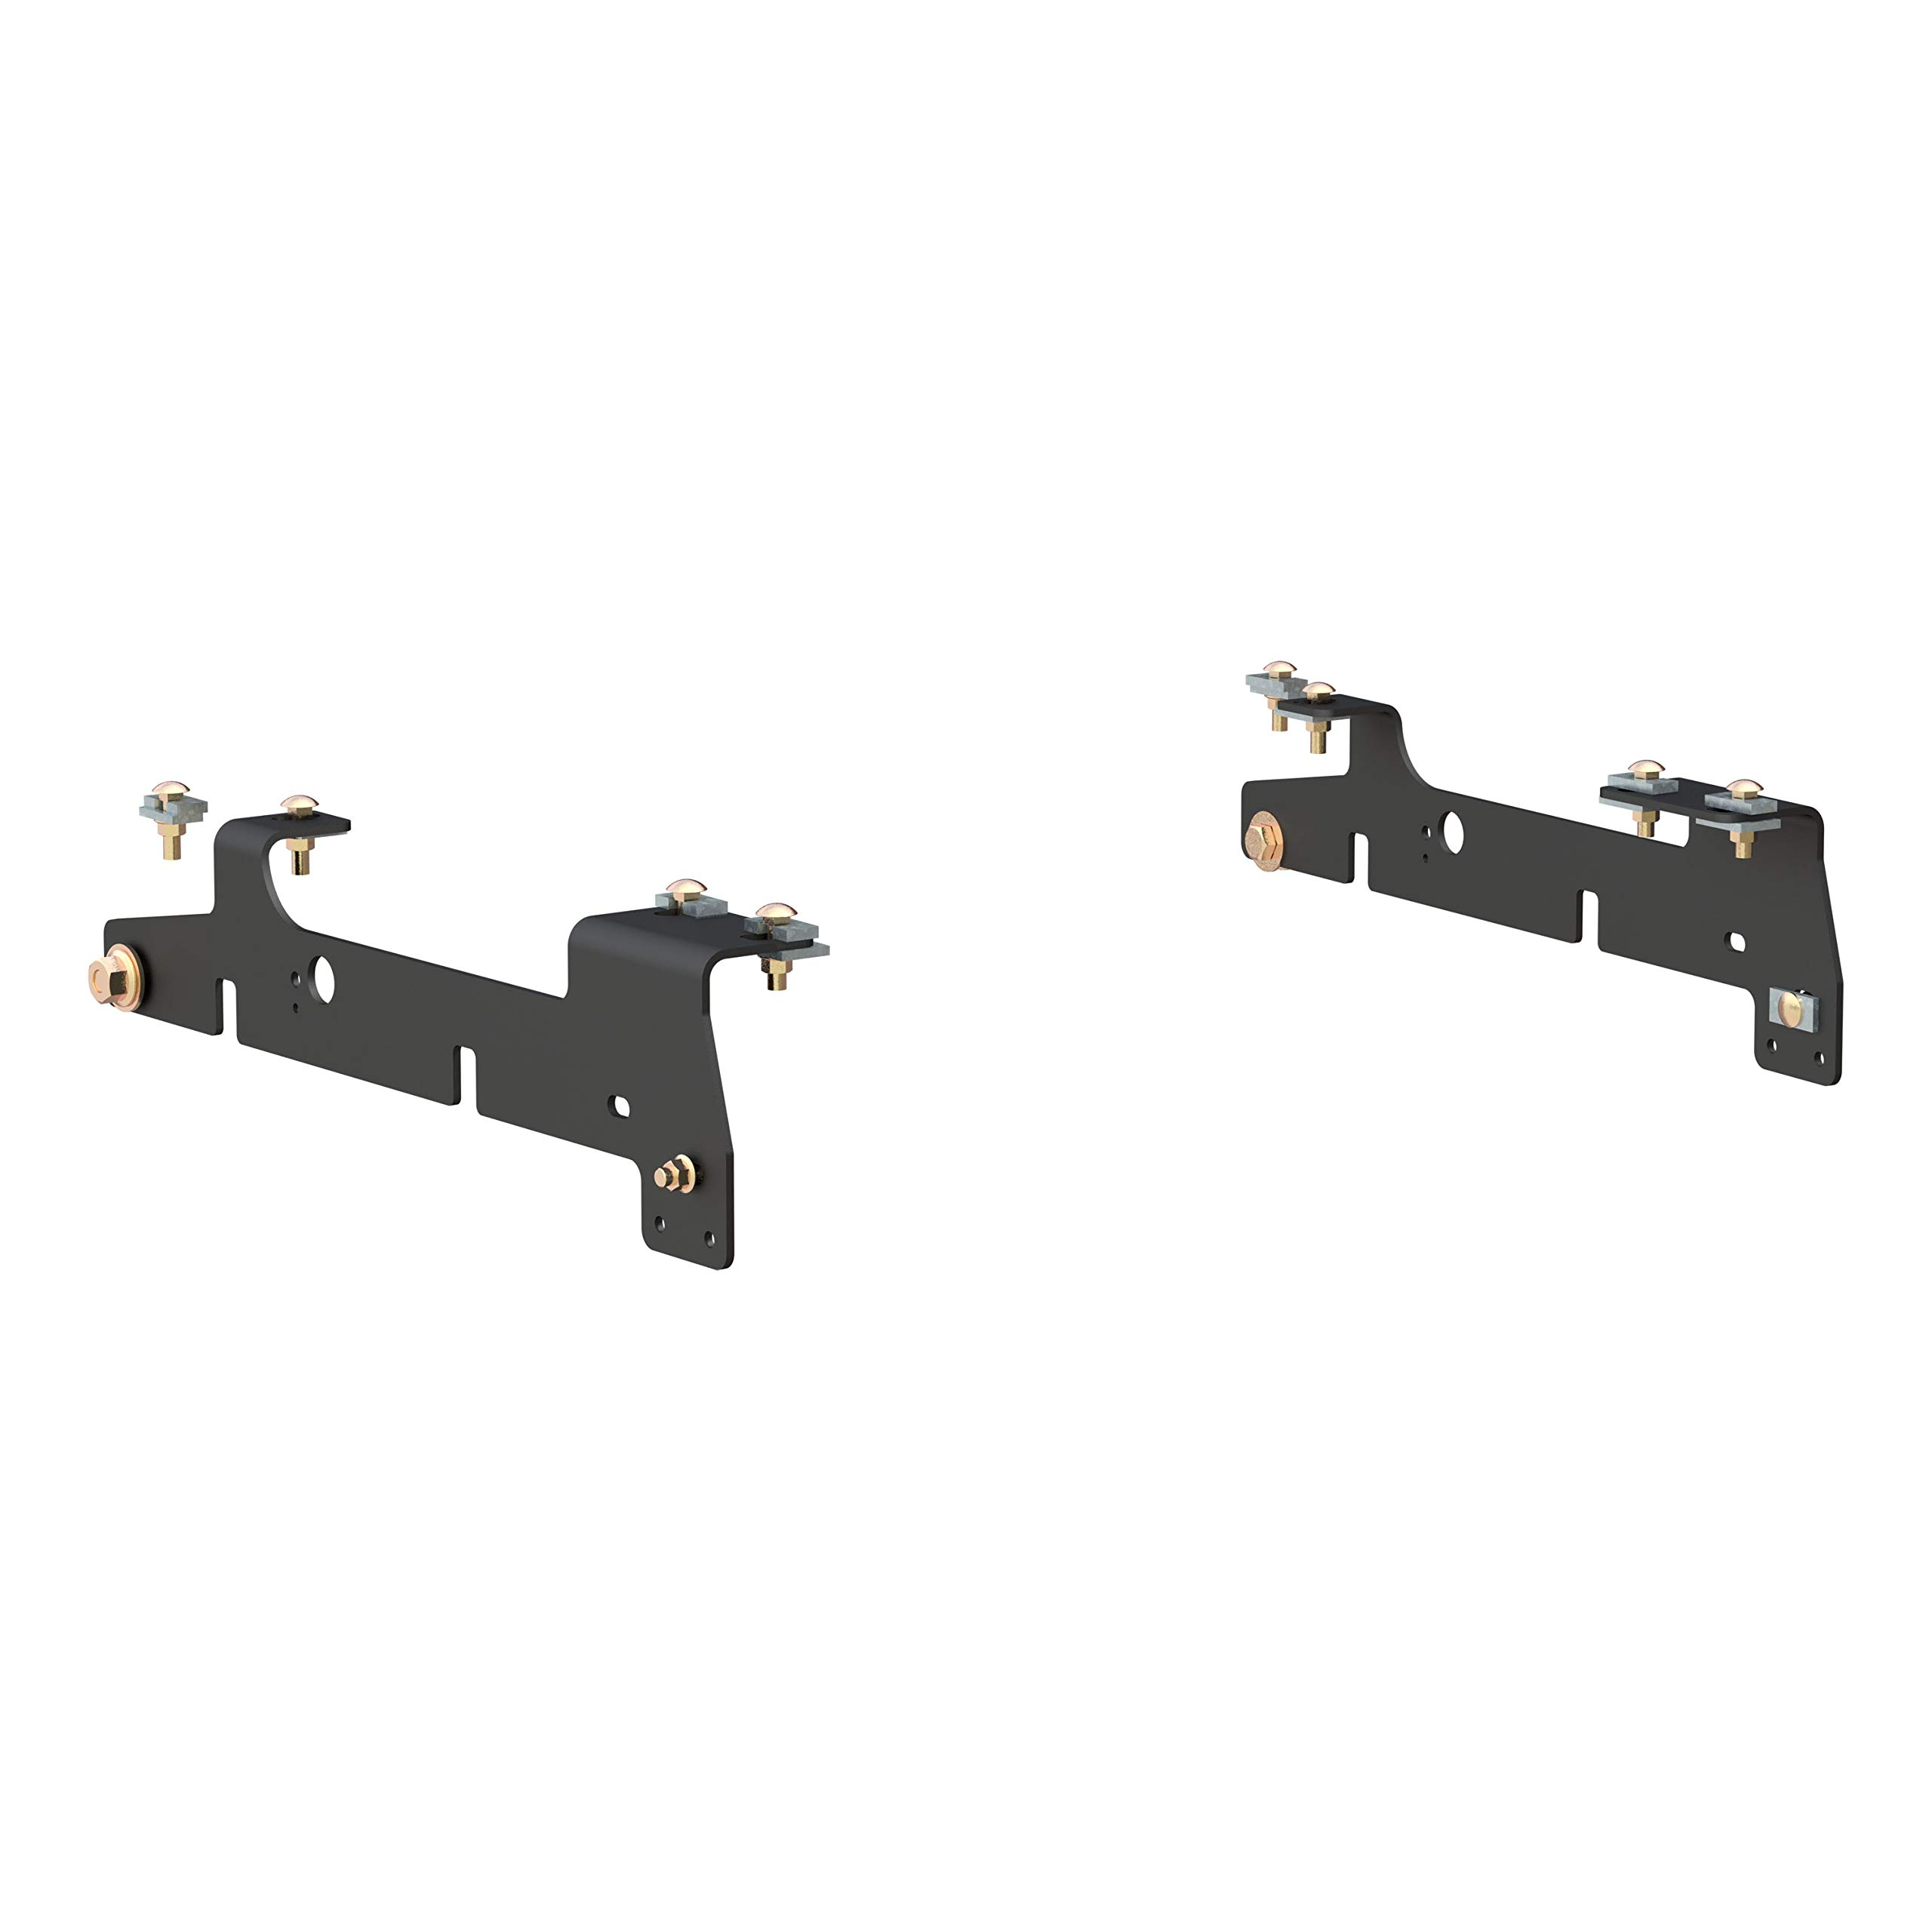 CURT 16437 5th Wheel Hitch Installation Brackets for Select Ford F-150, F-250 LD by CURT